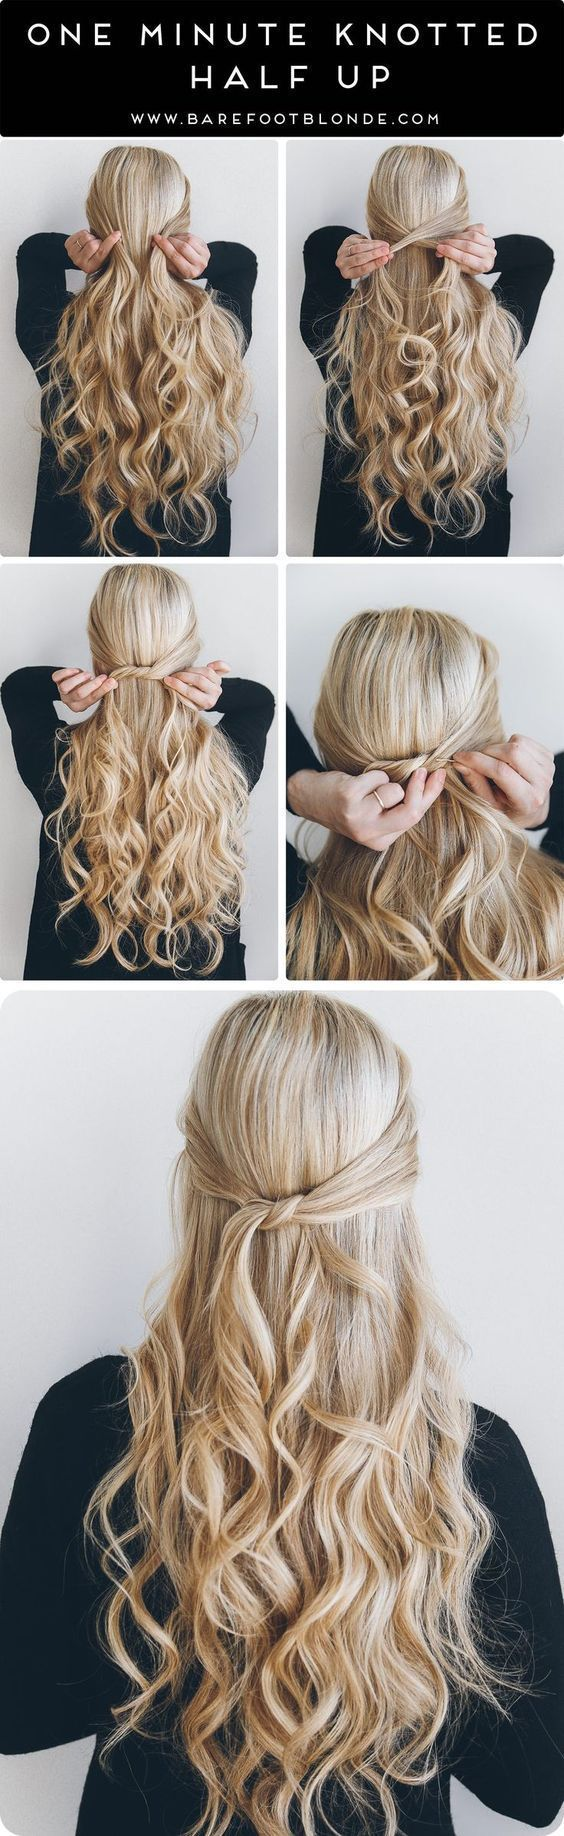 hair style best 25 popular hairstyles ideas on popular 8594